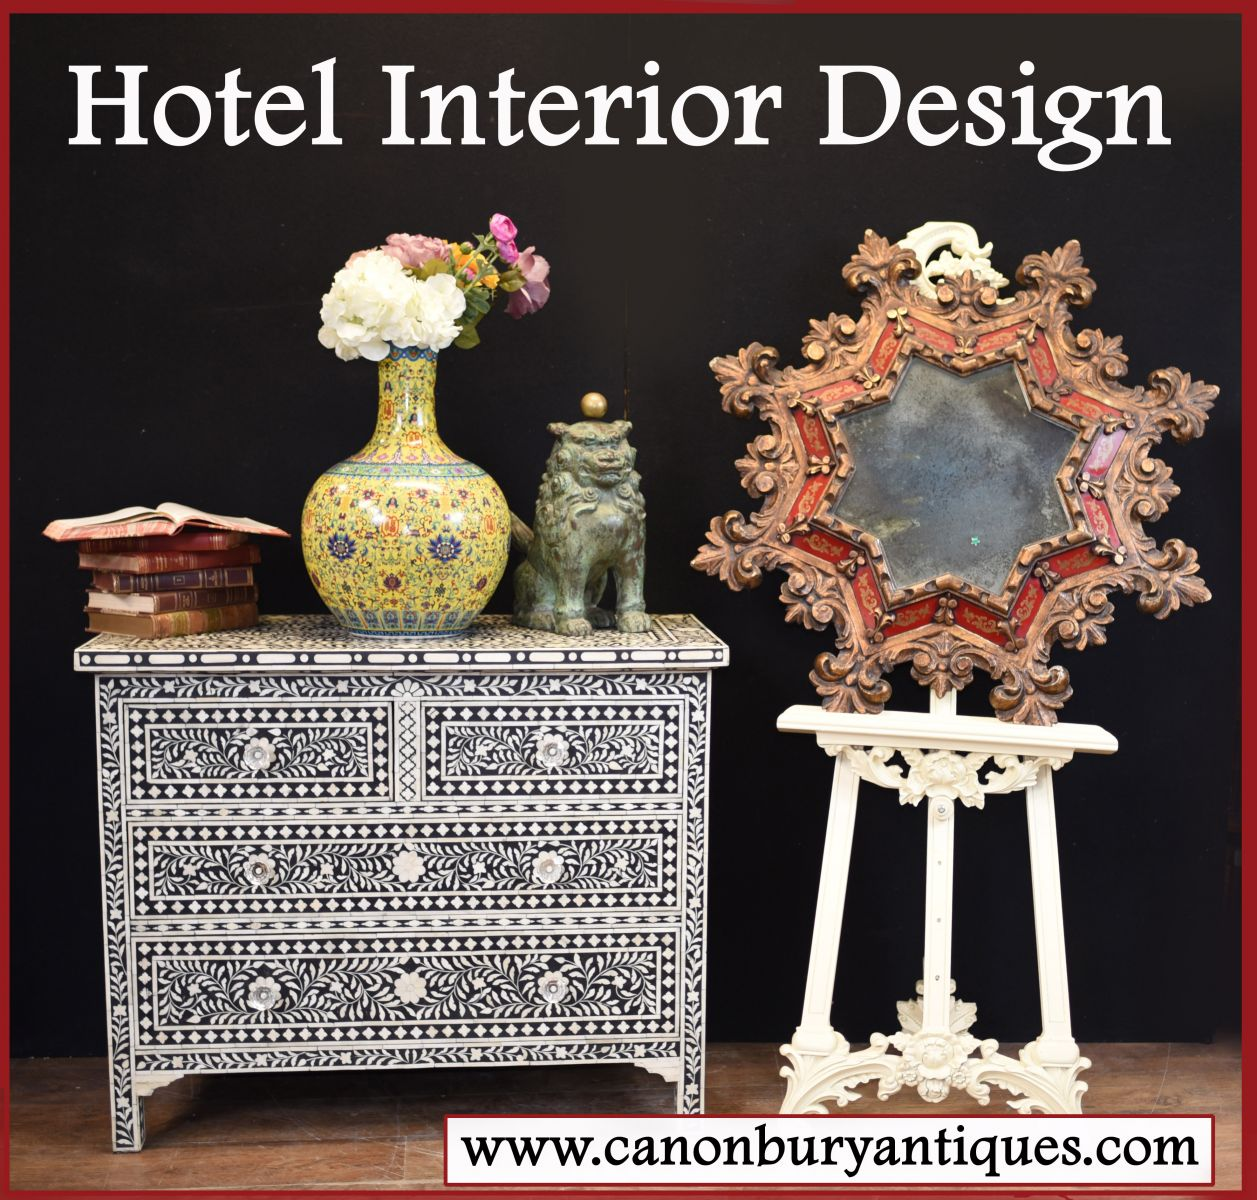 All your needs for your hotel interior design project covered...